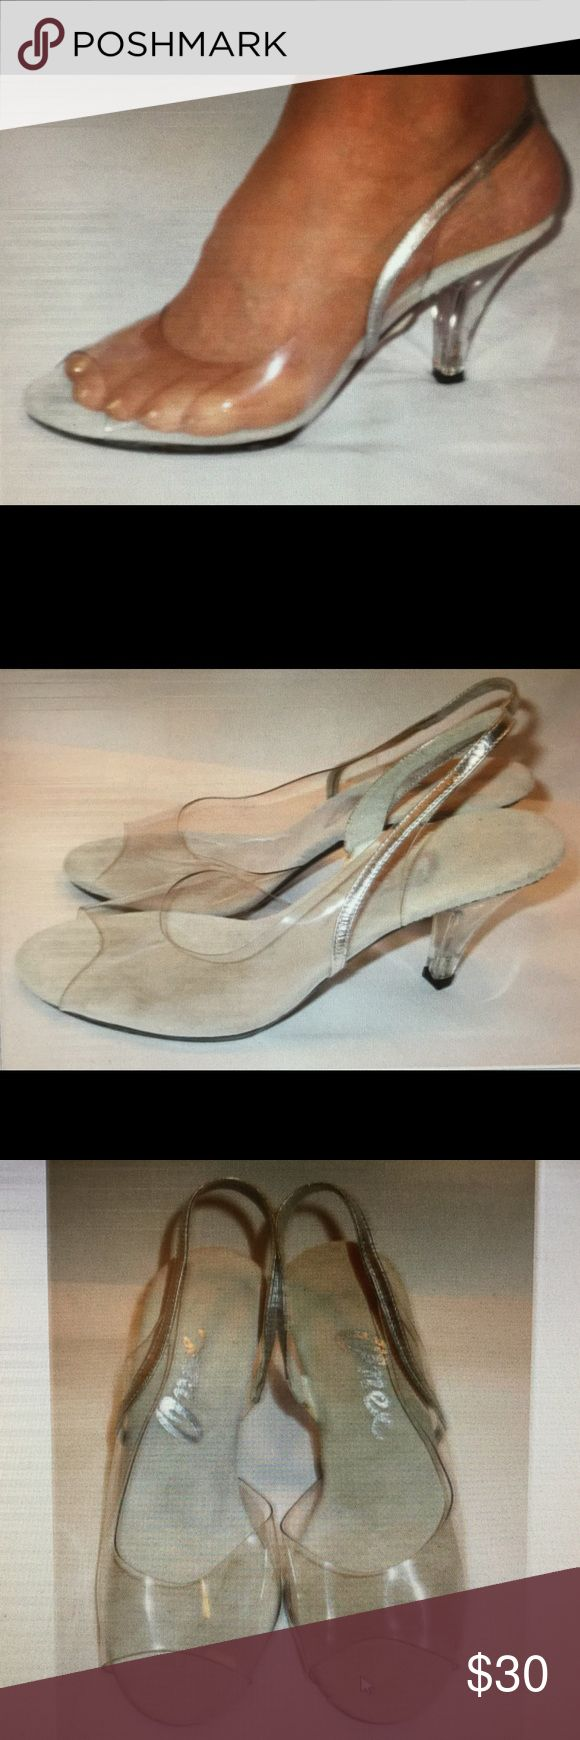 """Evening shoes  - Onex clear & silver spike heels Perfect for any special occasion. Toe vamp is clear. Sling back and sole edge are silver.  3"""" lucite heel. Pale gray suede inner sole. New, never worn.   (047) Onex Shoes Heels"""